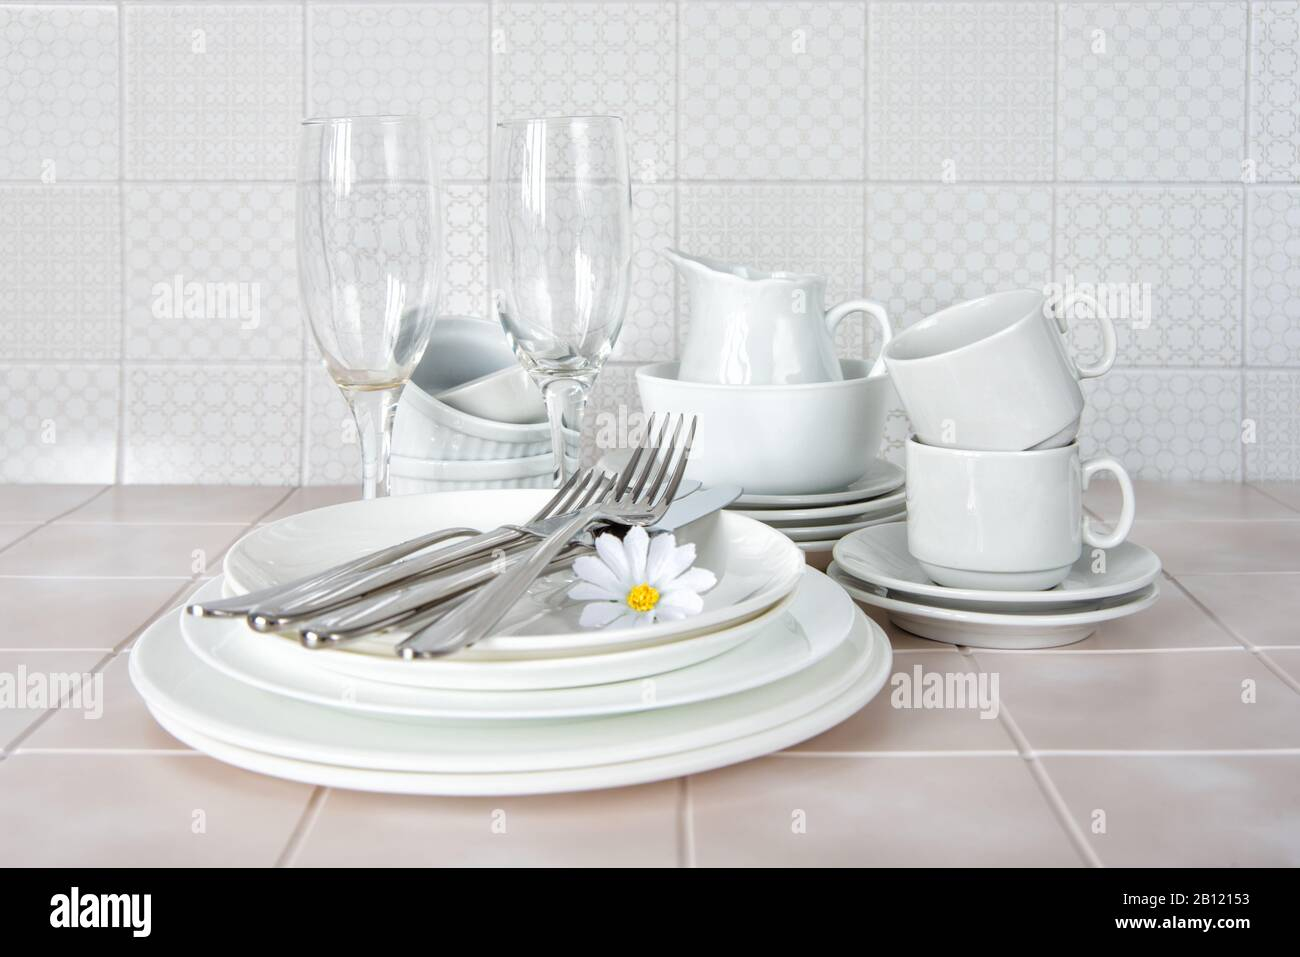 Stack of white porcelain plates, tea cups and wine glasses on the